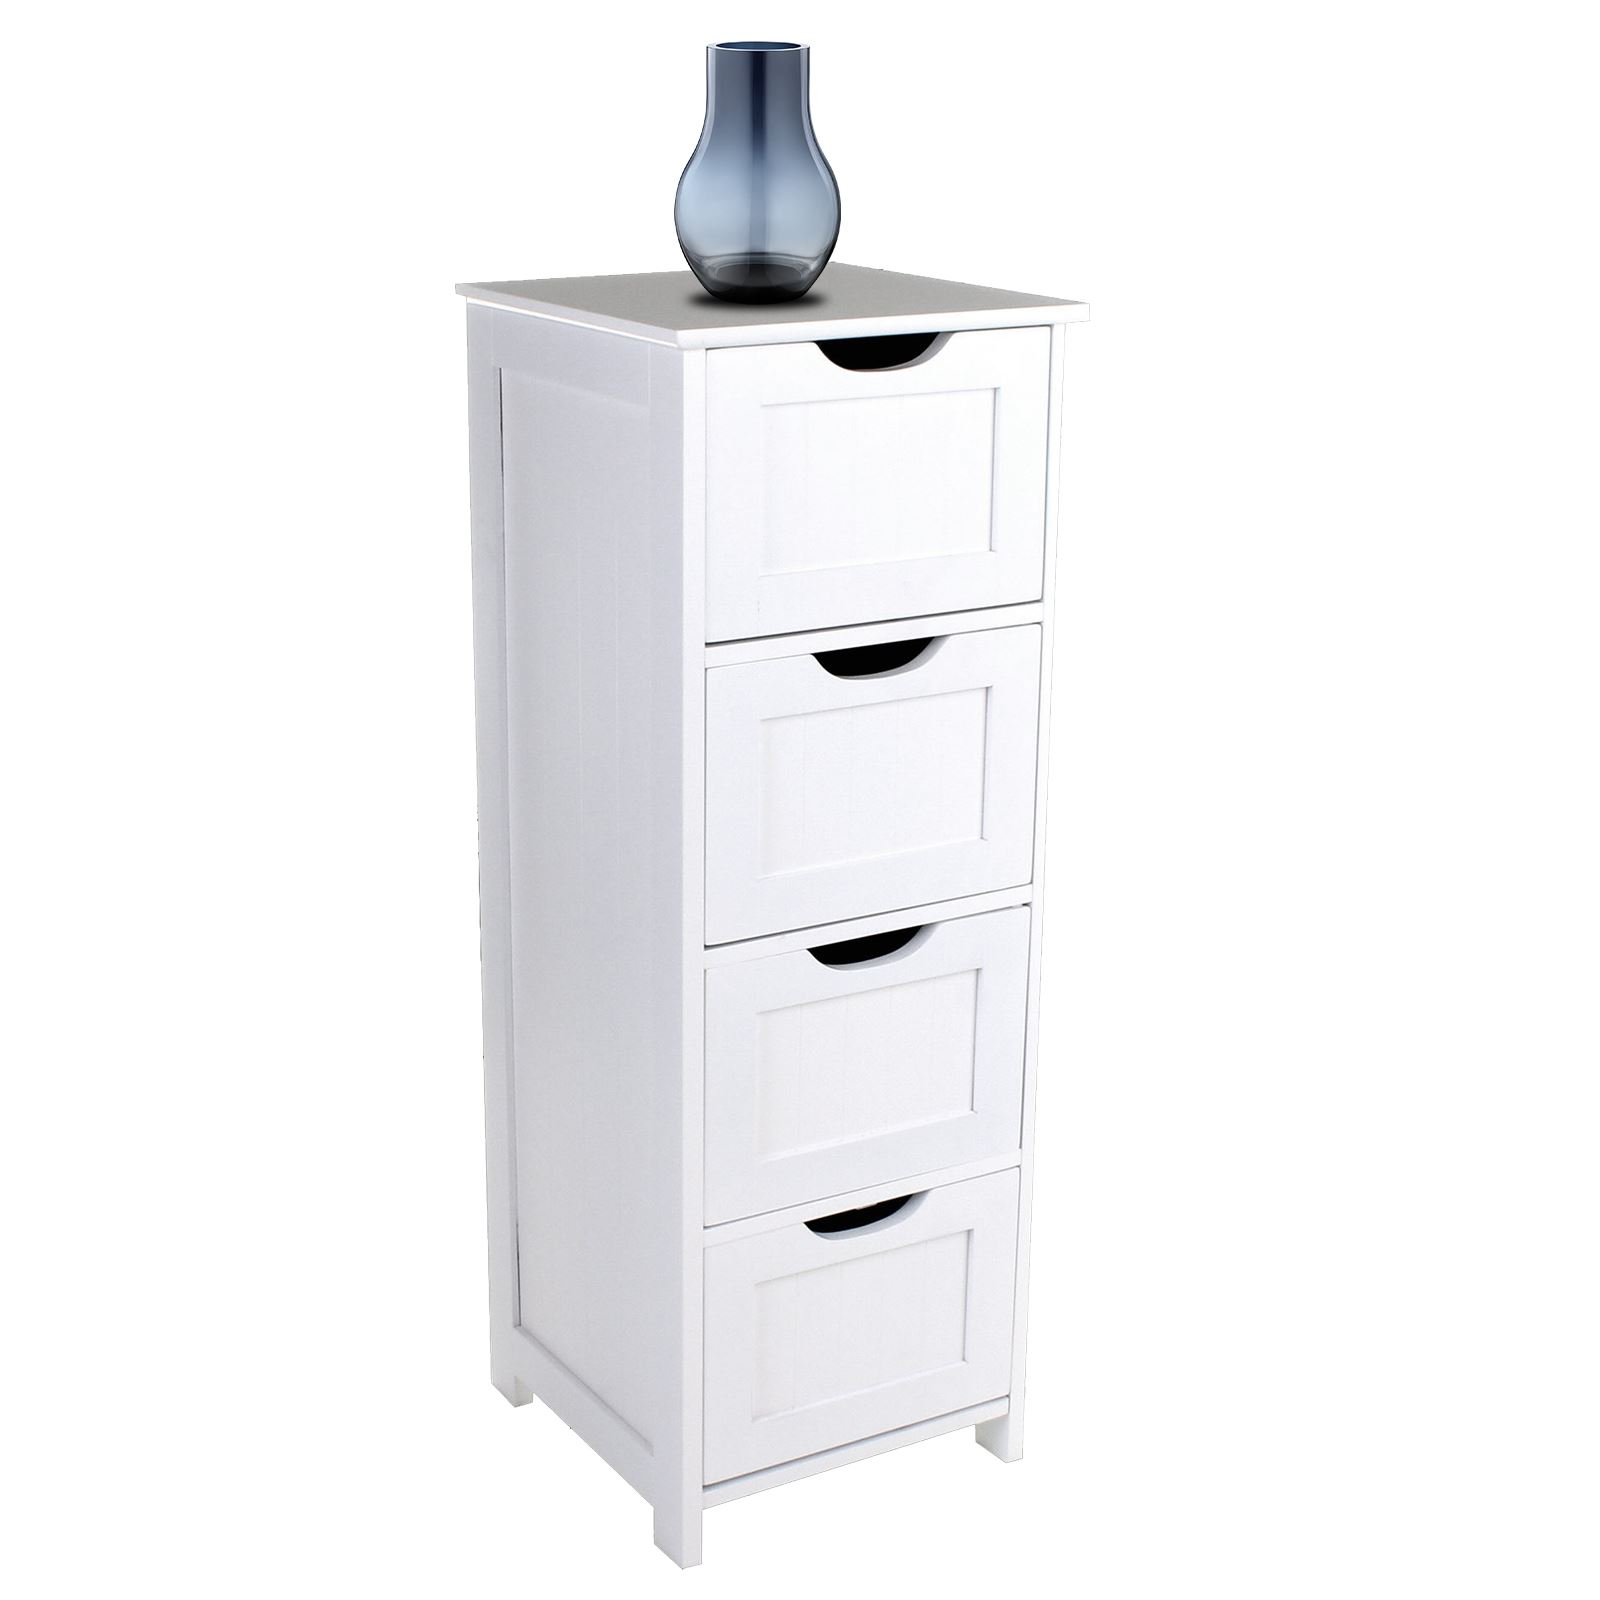 bathroom drawers unit large white furniture storage cabinet modern